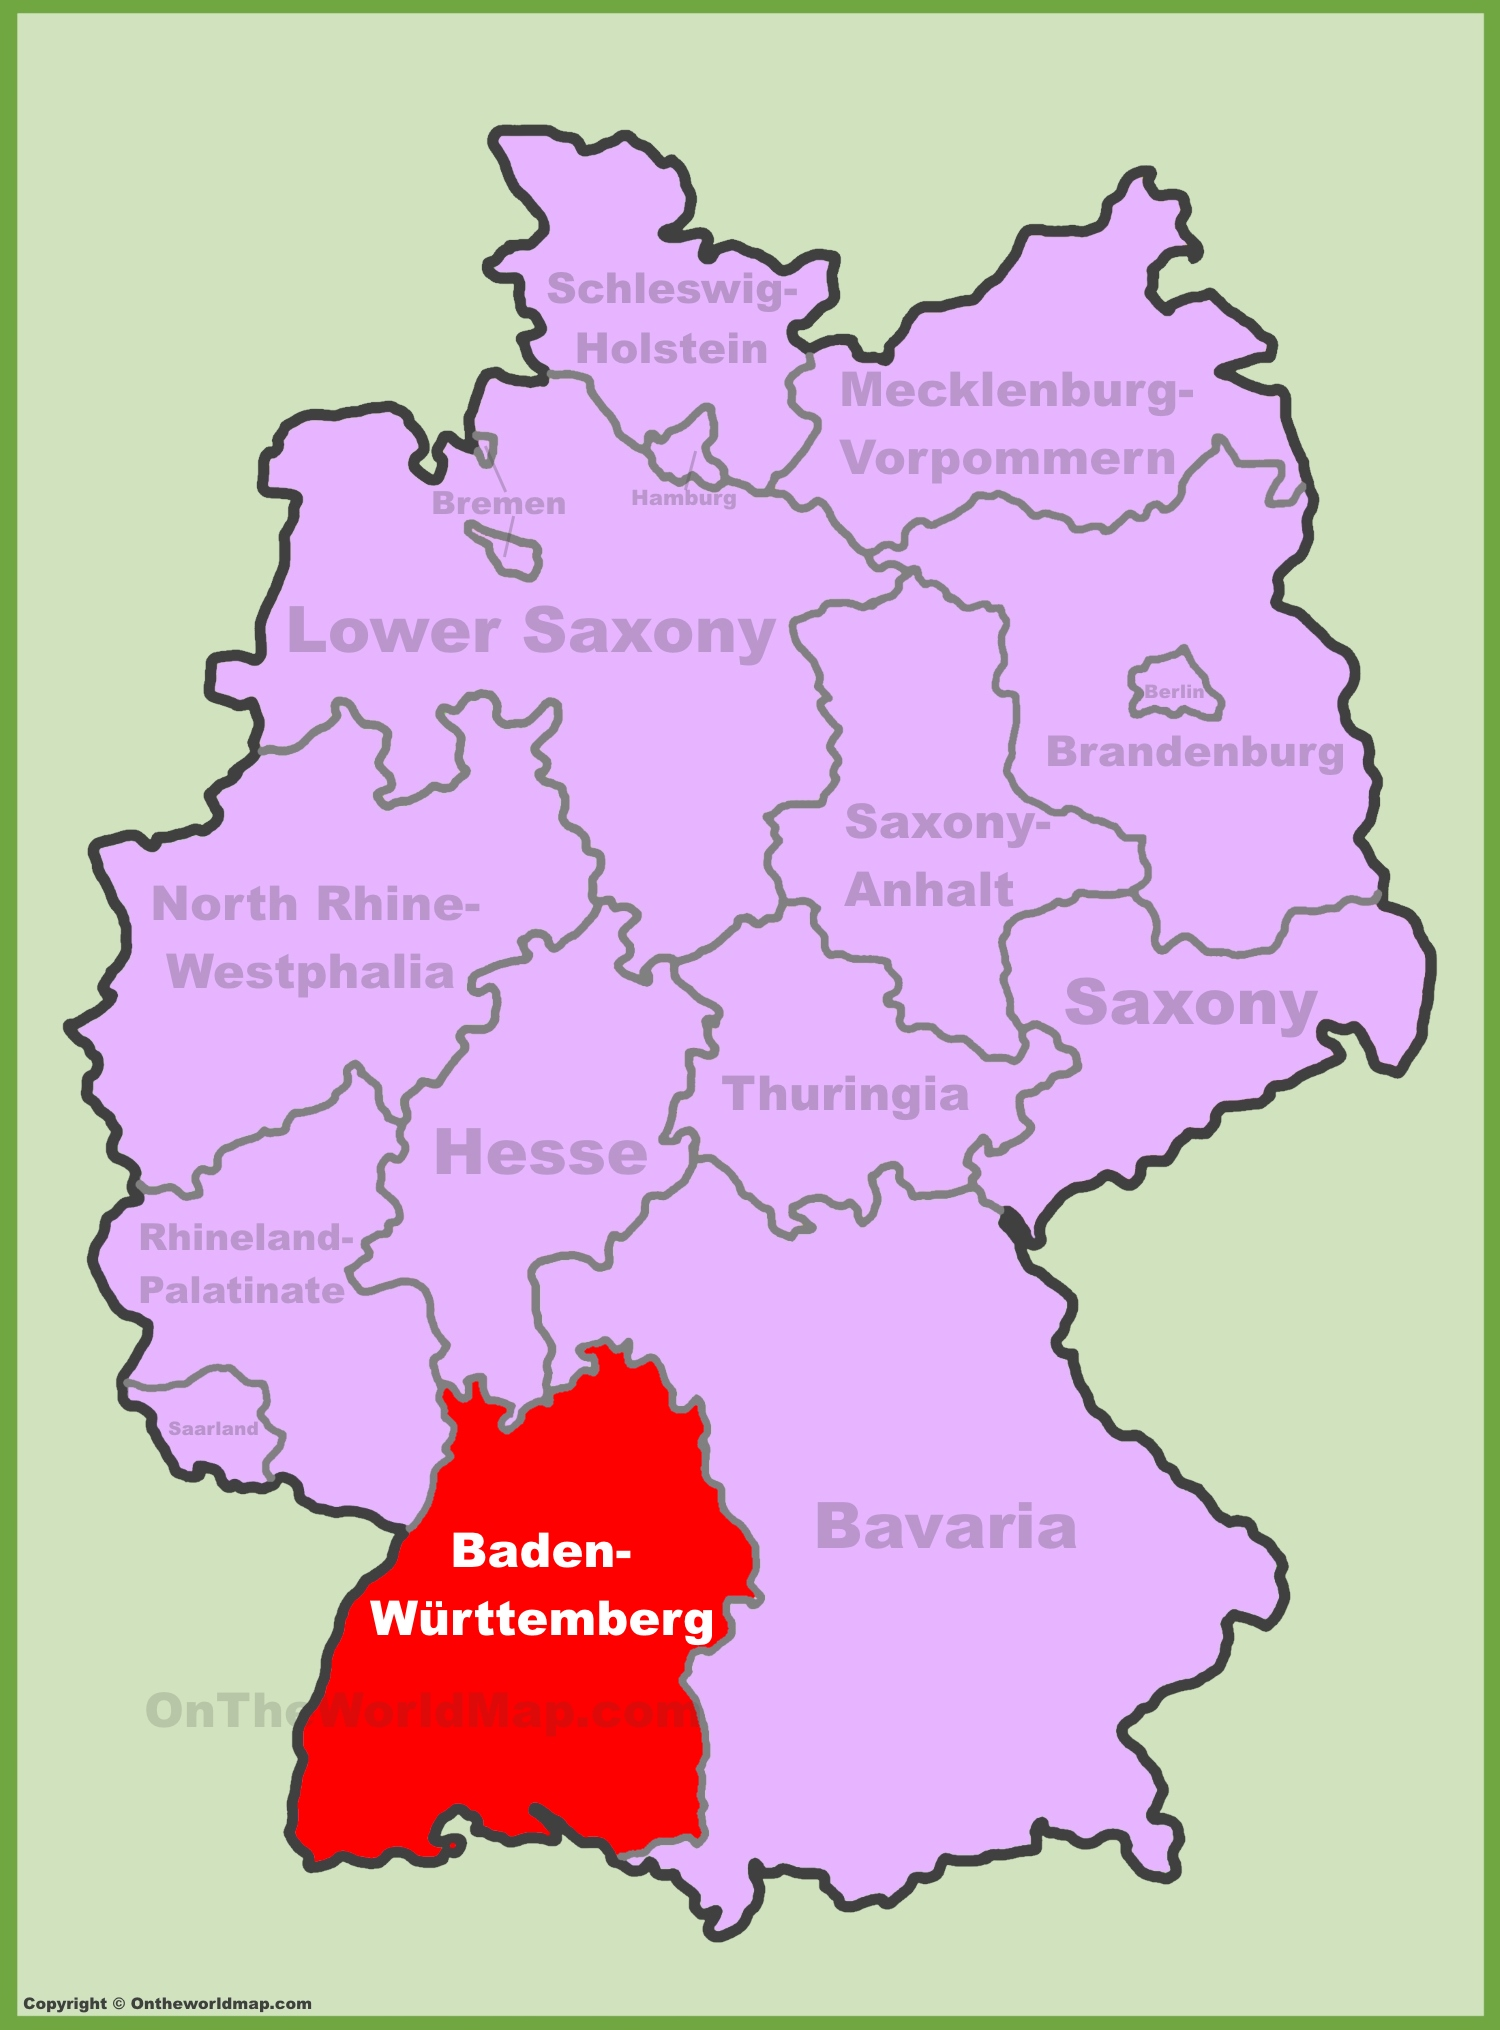 Baden wrttemberg location on the germany map baden wrttemberg location on the germany map gumiabroncs